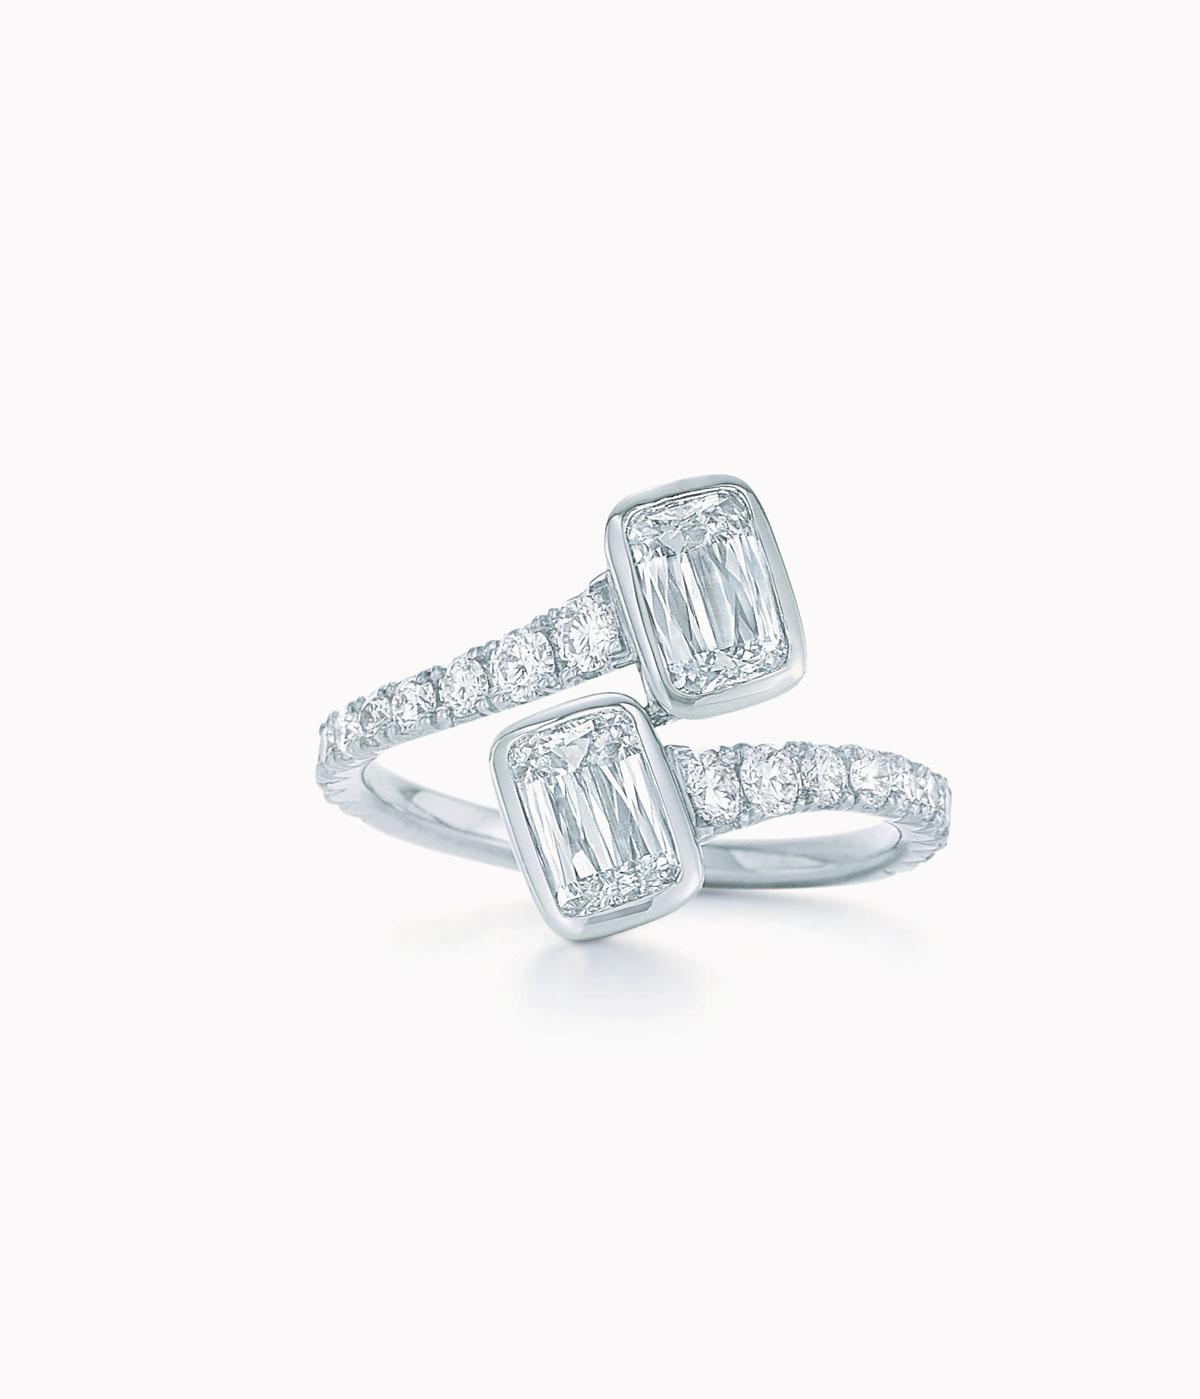 kwiat engagement rings play with fluid curves